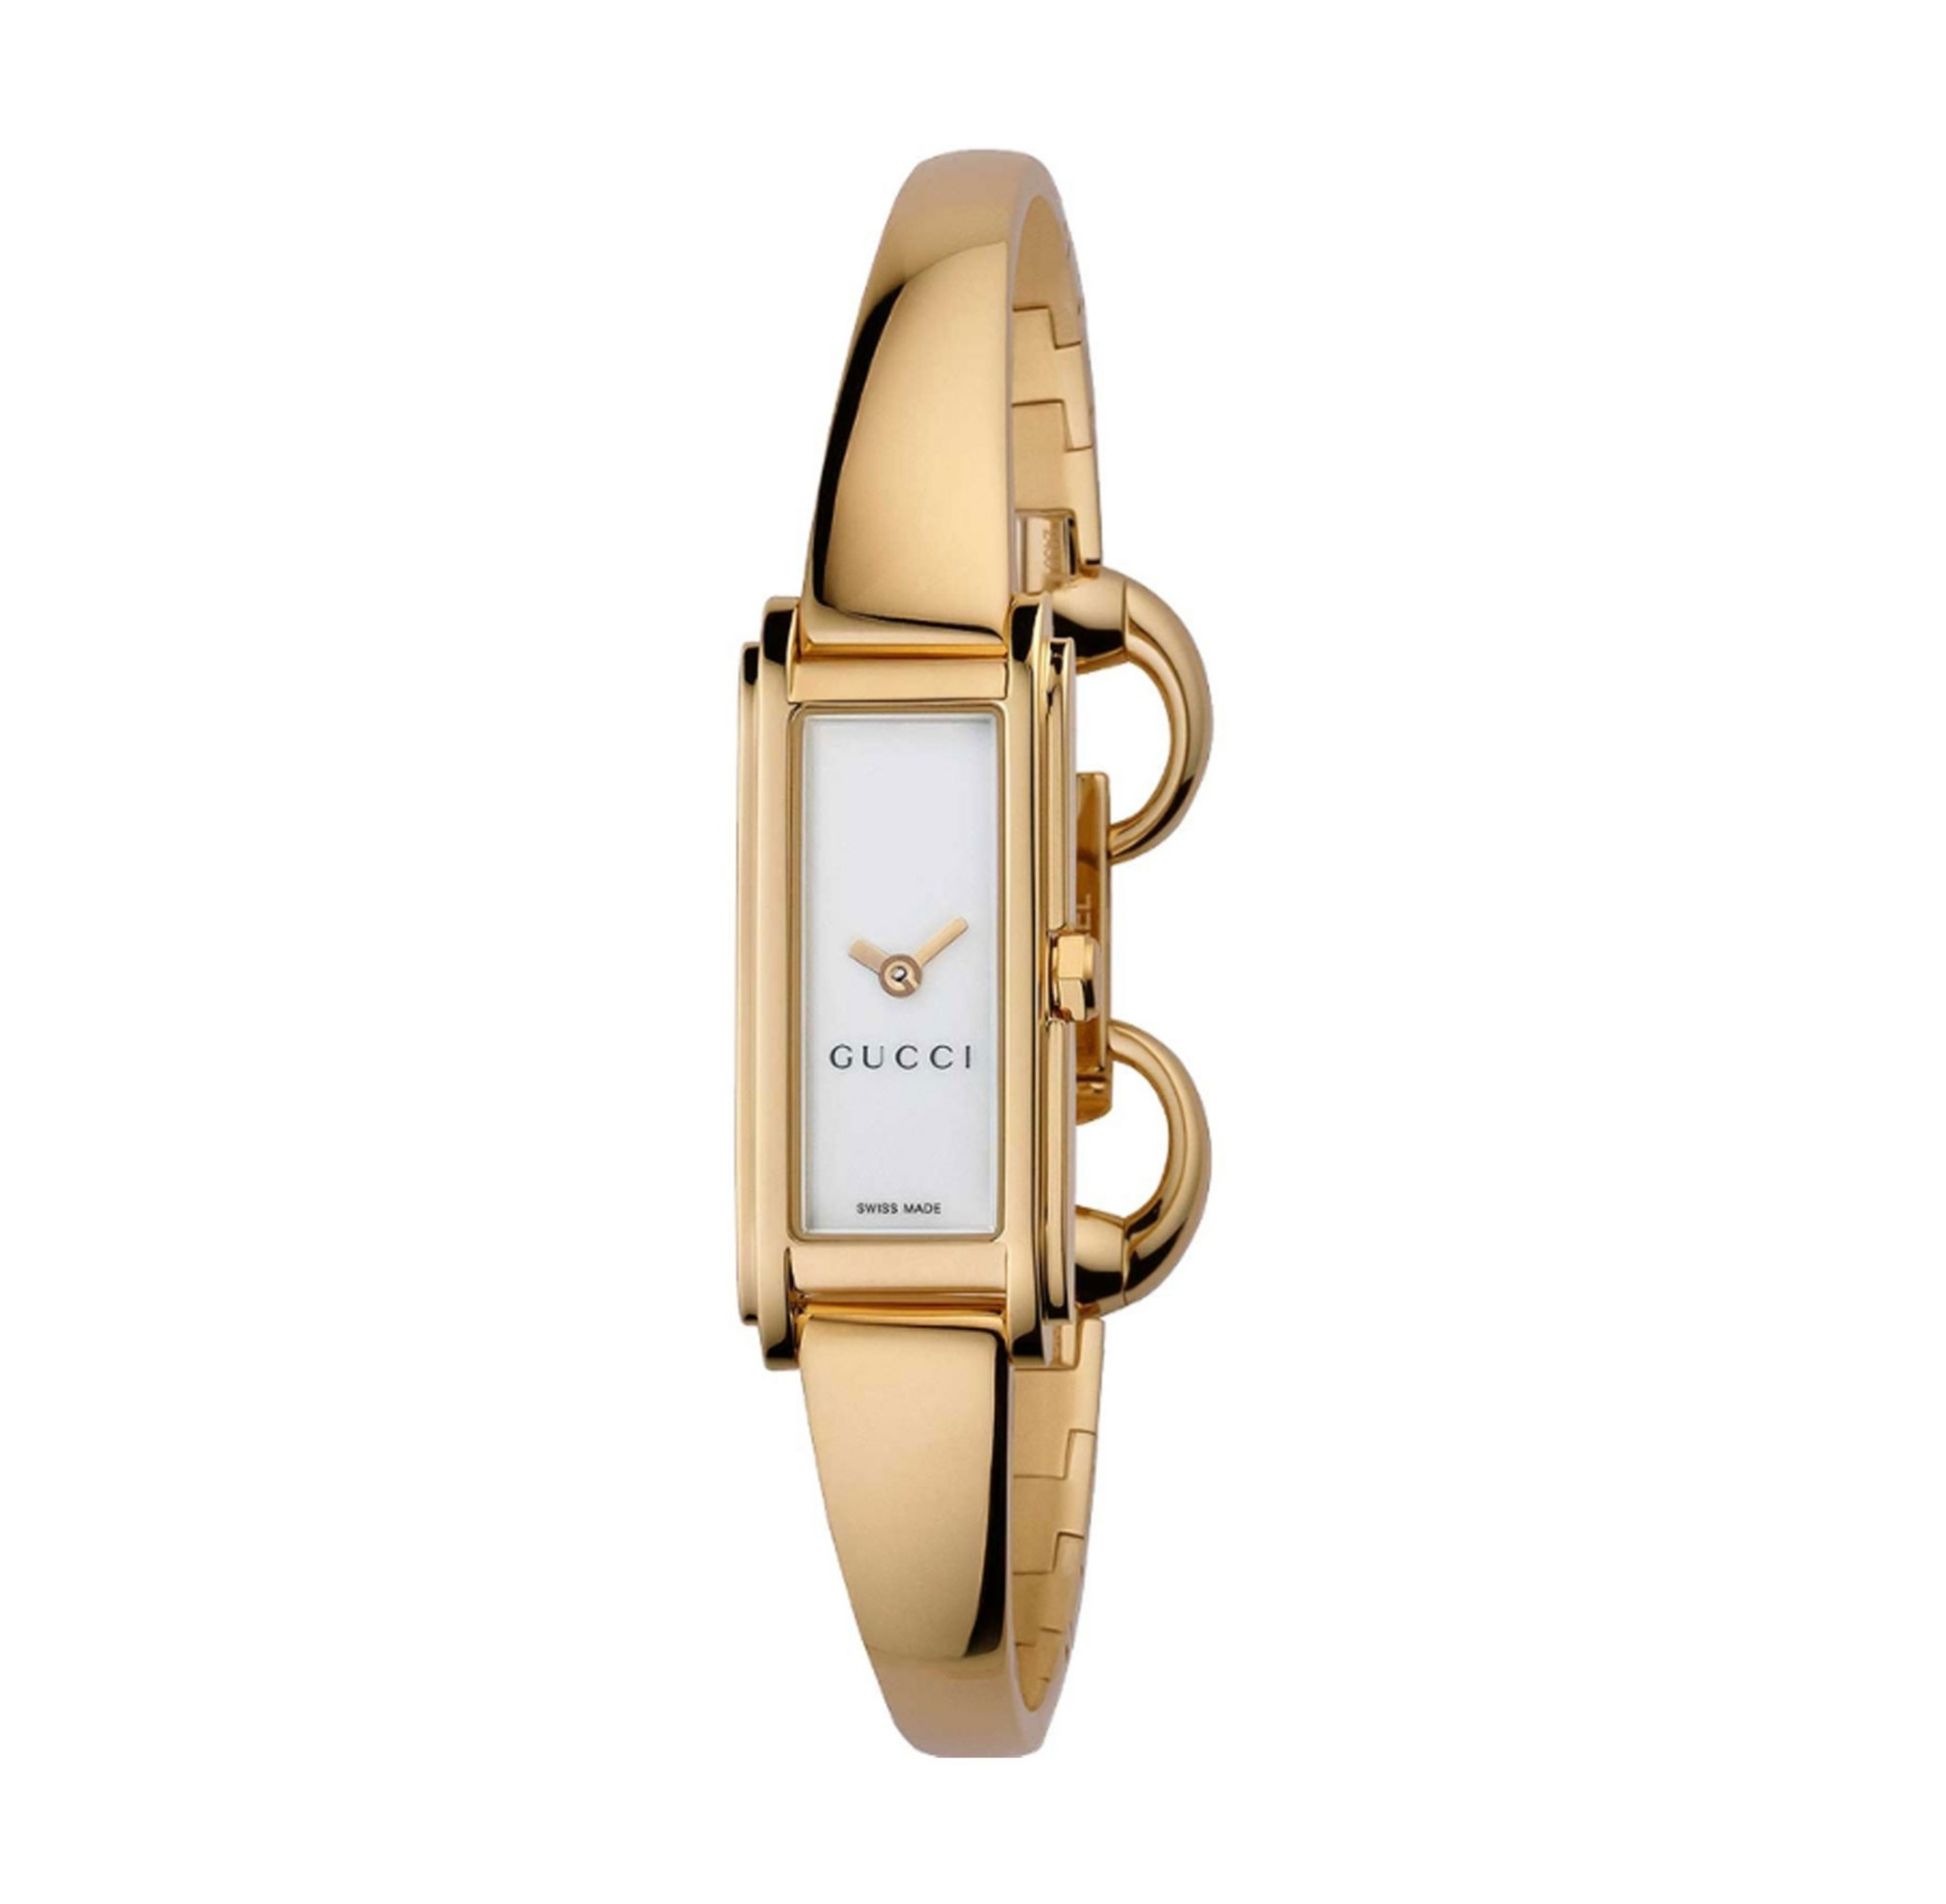 7f8c7b7d638 Gucci Ya109527 Women s G Line Gold Plated Mother Of Pearl Bangle ...